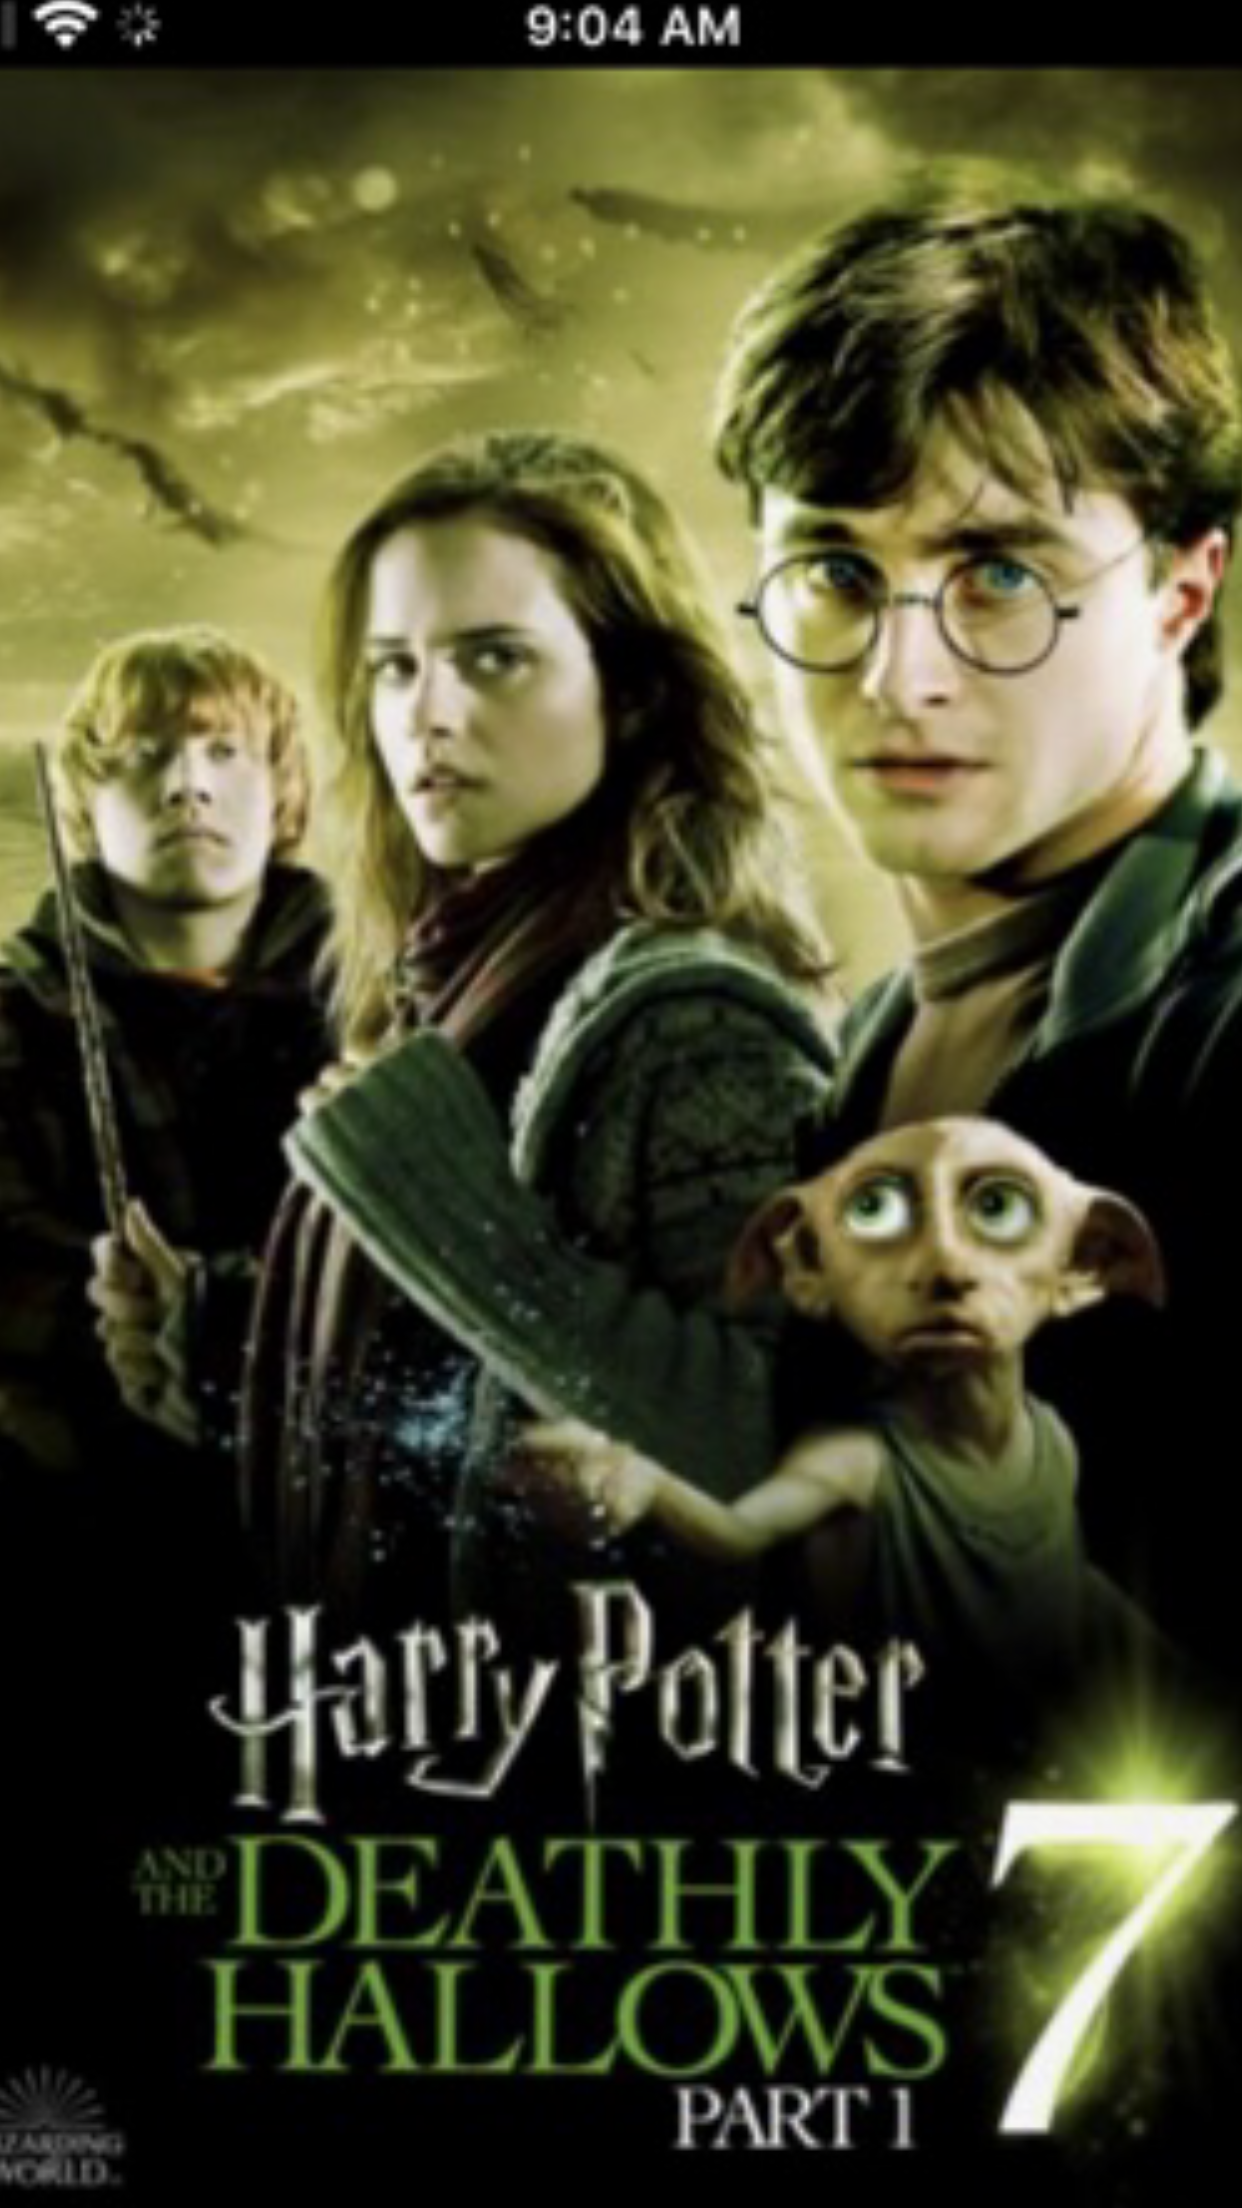 Pin By Doris Bailey On Harry Potter In 2020 Harry Potter Movie Posters Free Tv Shows